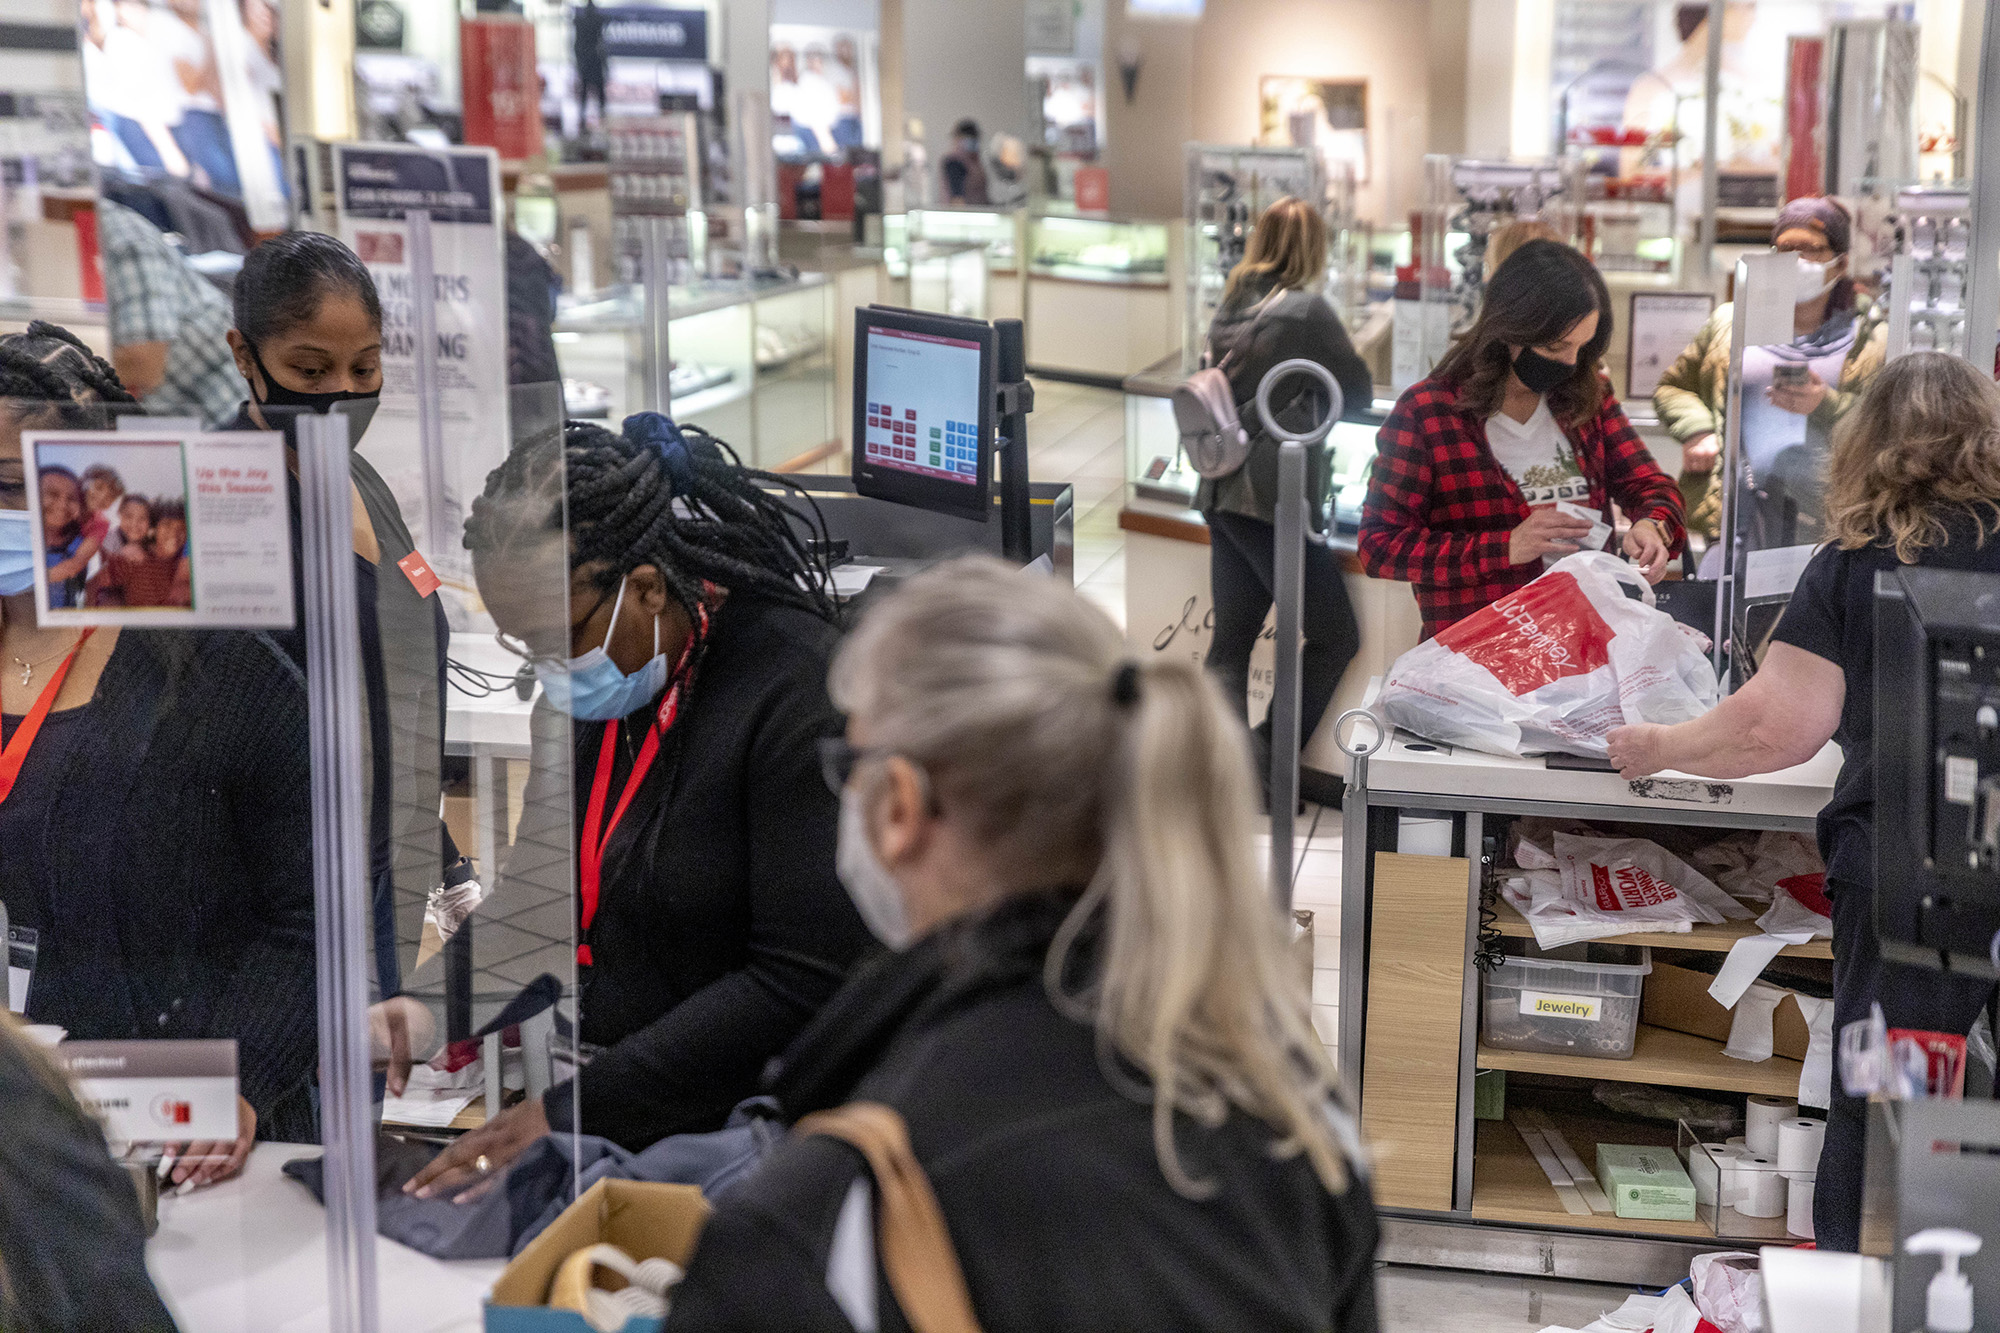 As JCPenney exits bankruptcy, its long-term outlook remains grim